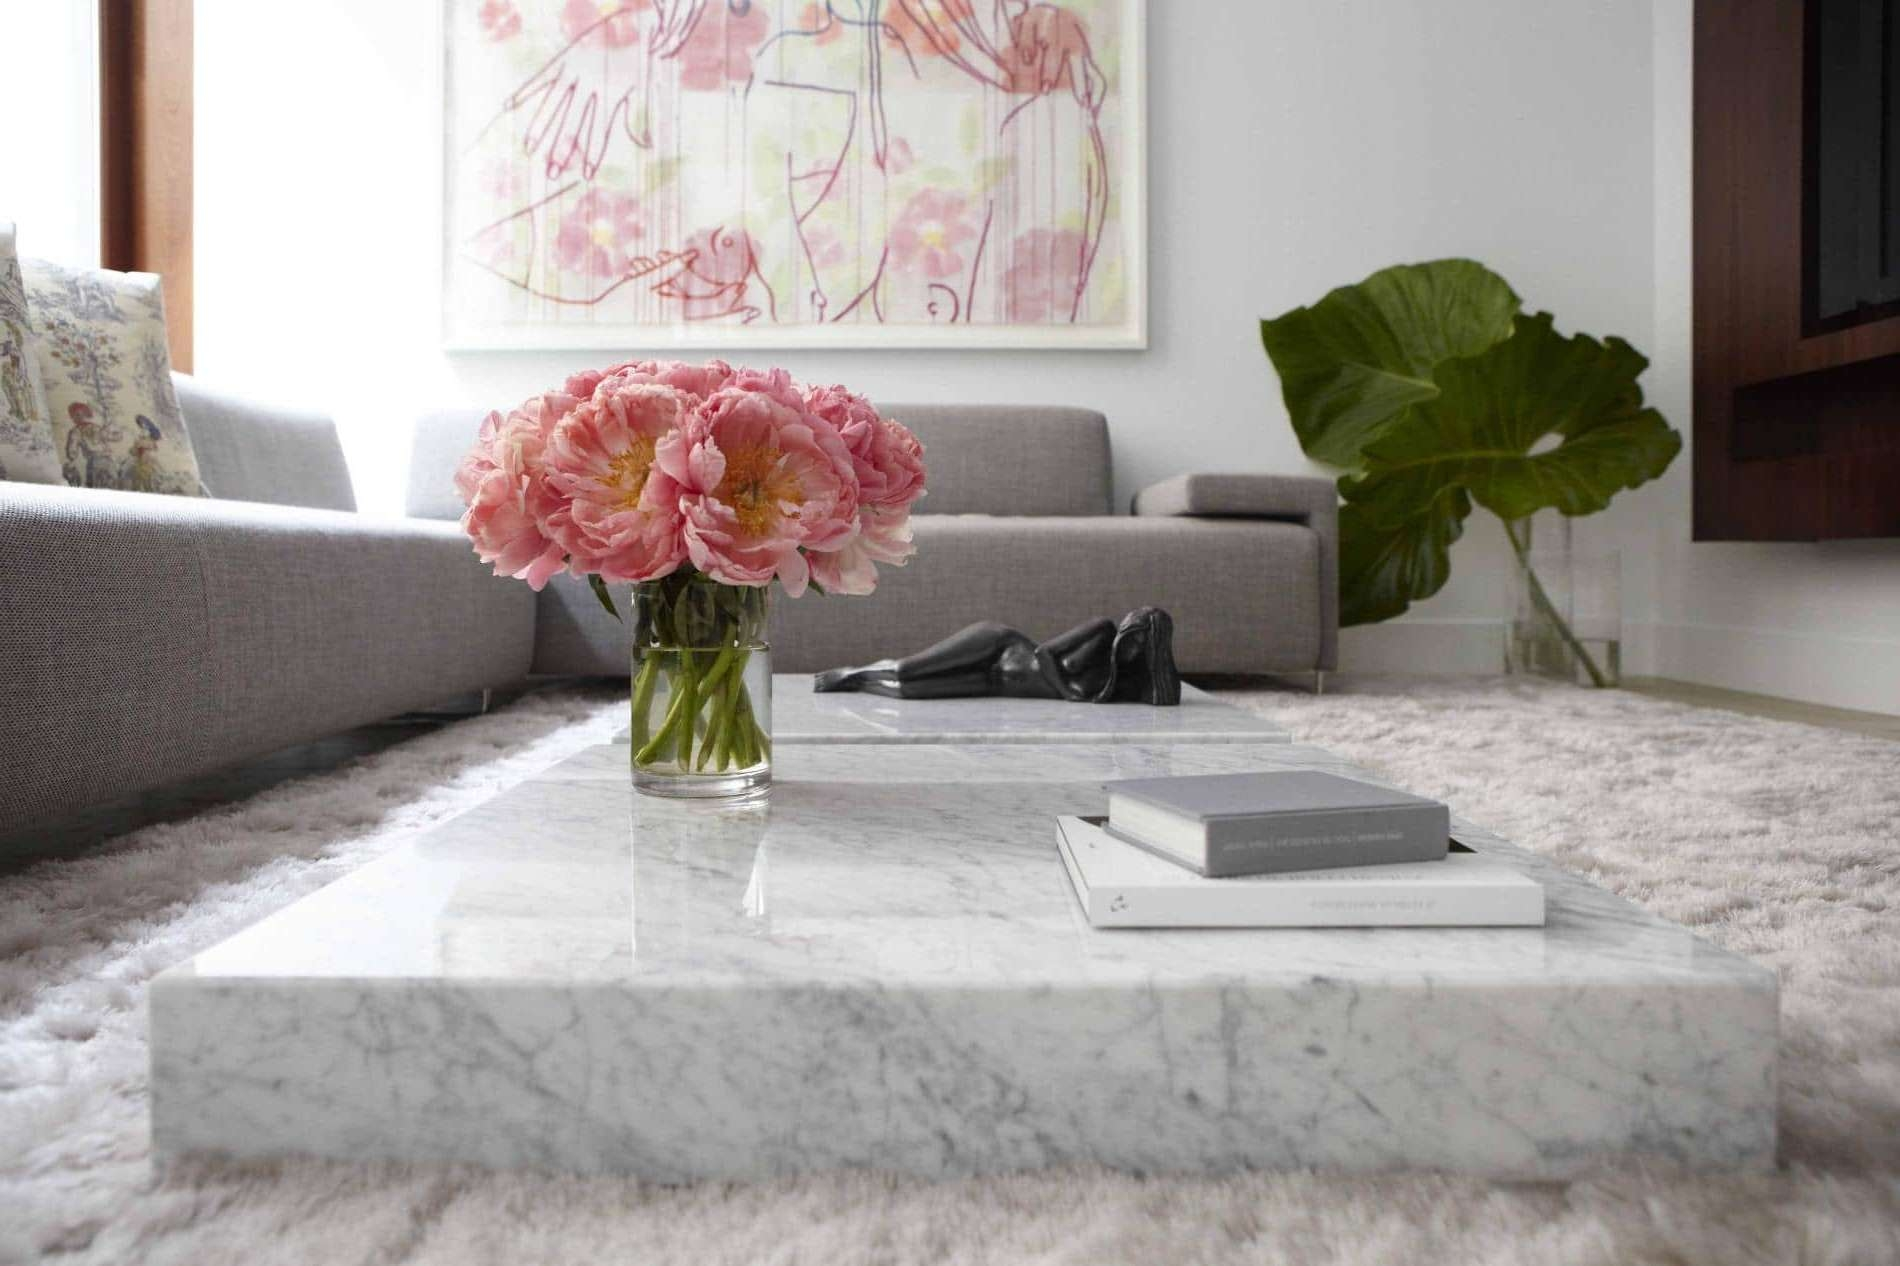 Marble Coffee Table Design, Style Ideas And Tips – Sefa Stone Inside Current Marble Coffee Tables (View 10 of 20)